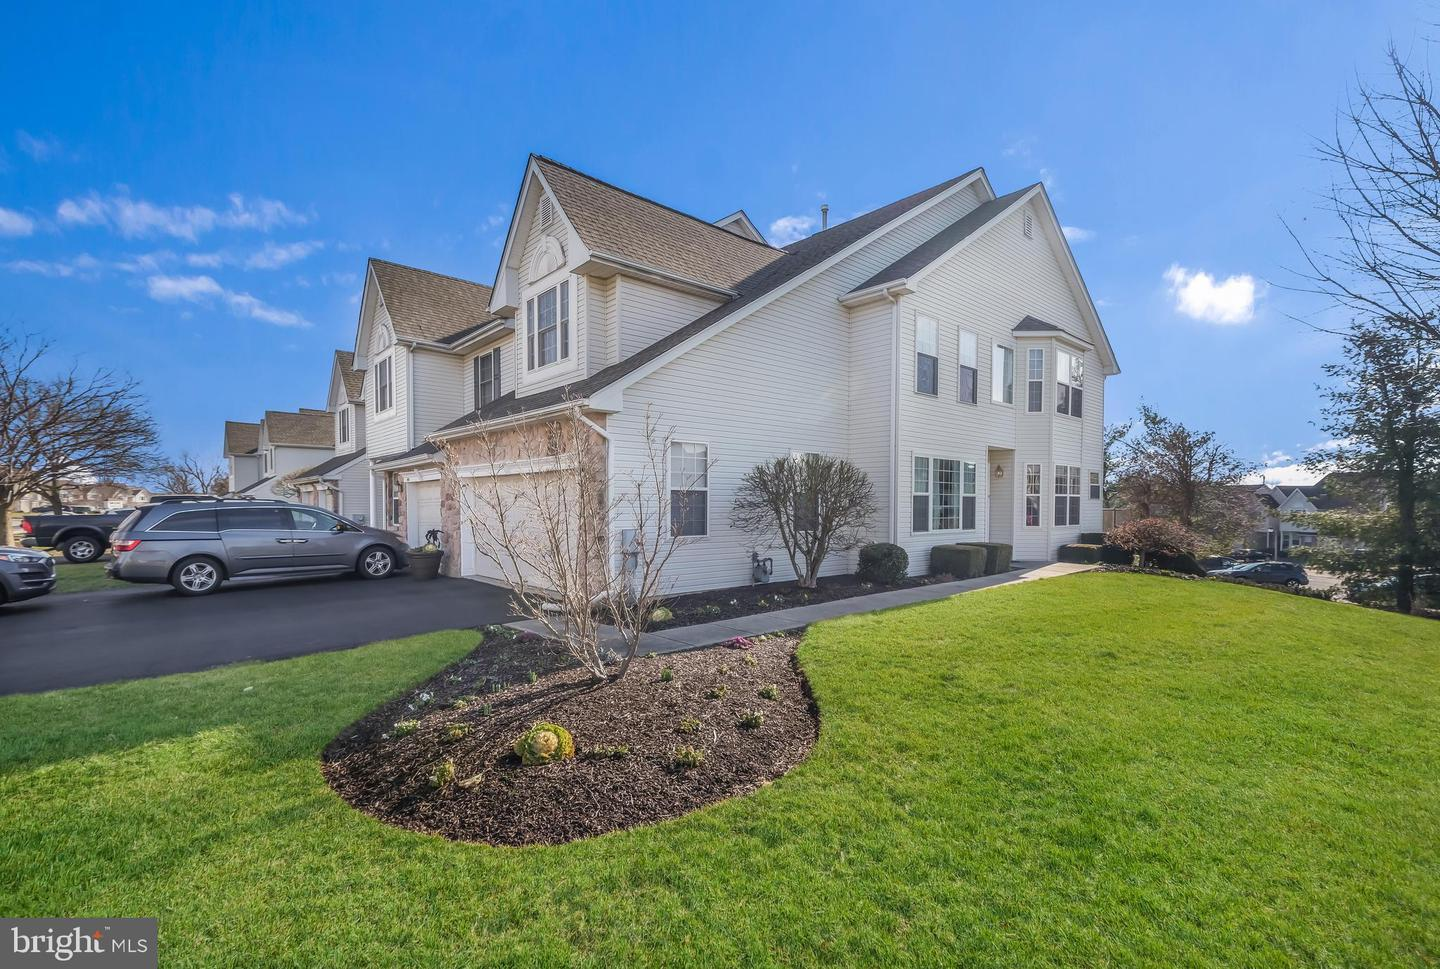 Chalfont Open Houses